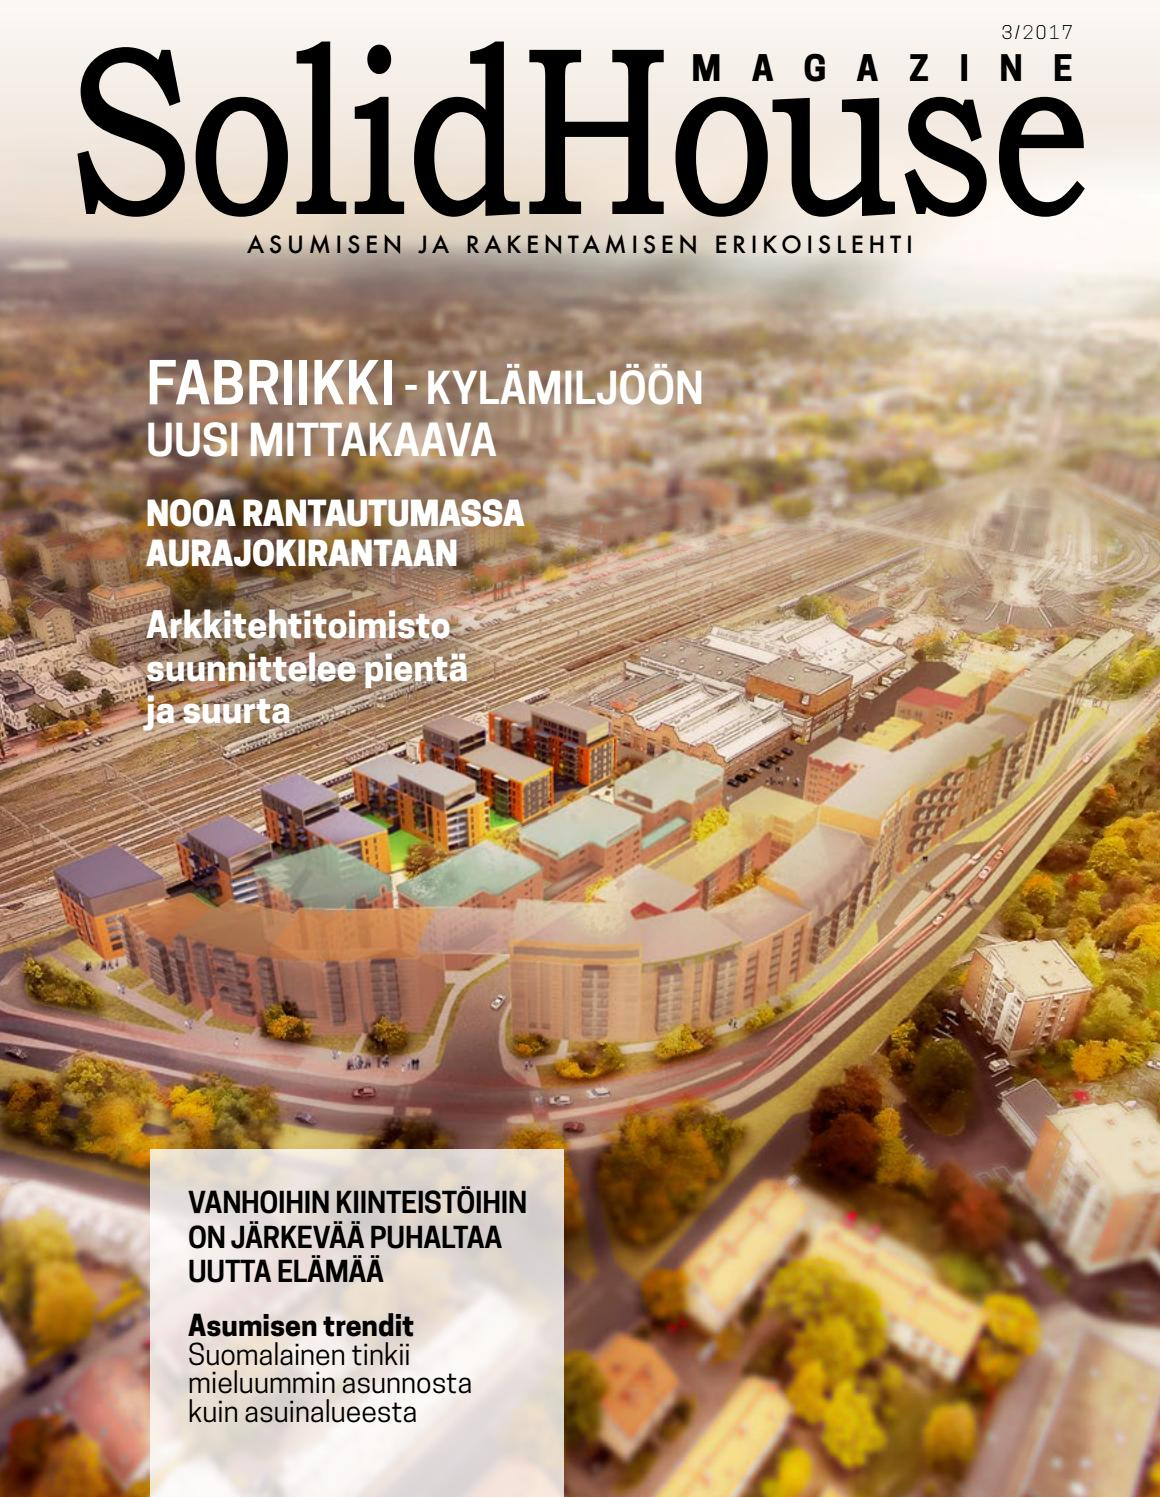 Solid House Magazine 3 2017 by Solid House Magazine - issuu 2368e4eff2